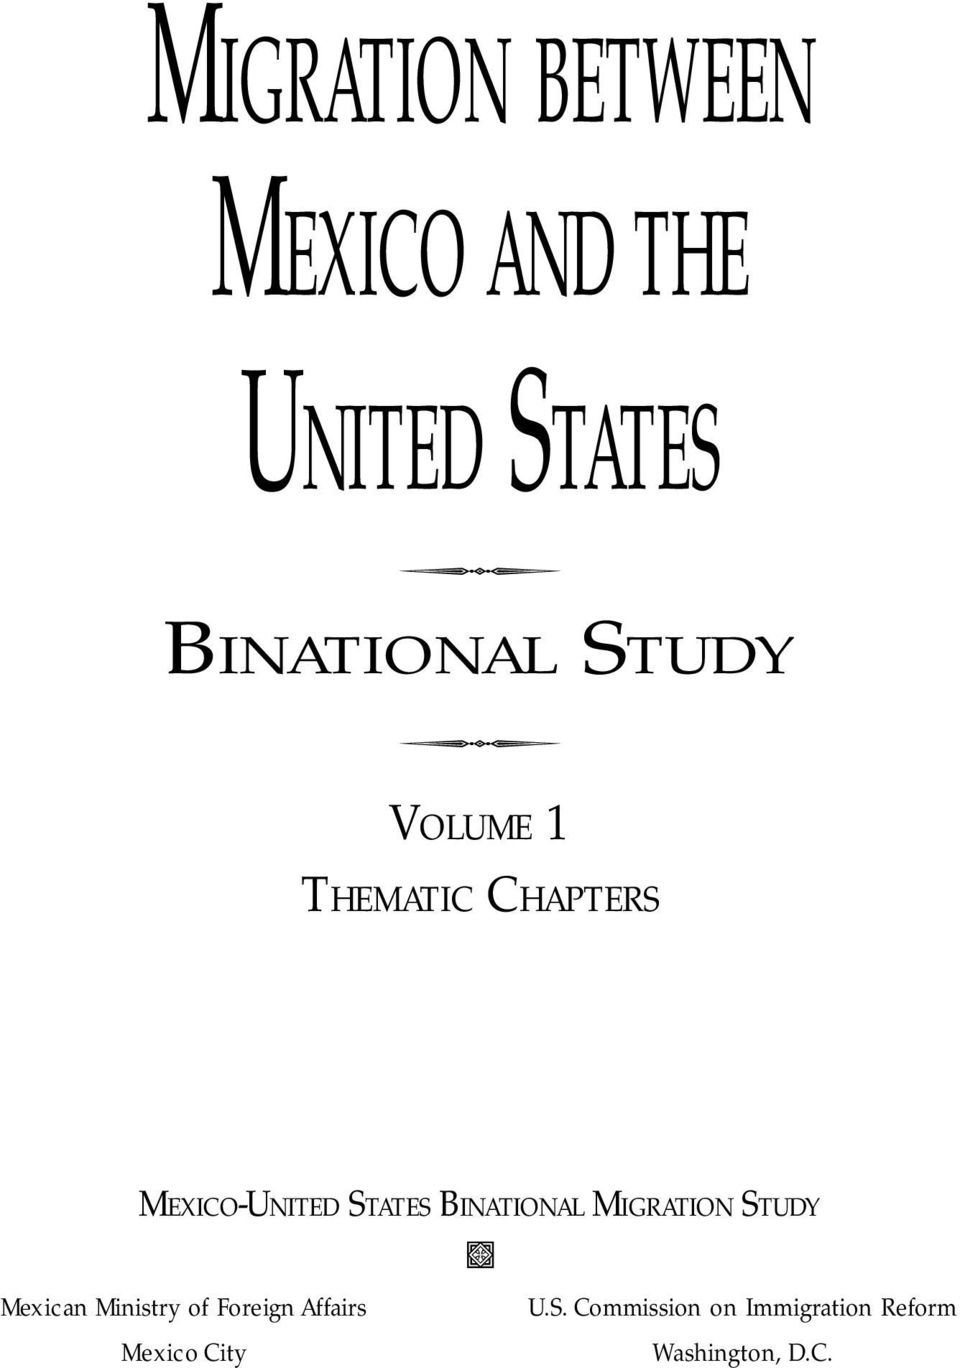 BINATIONAL MIGRATION STUDY Mexican Ministry of Foreign